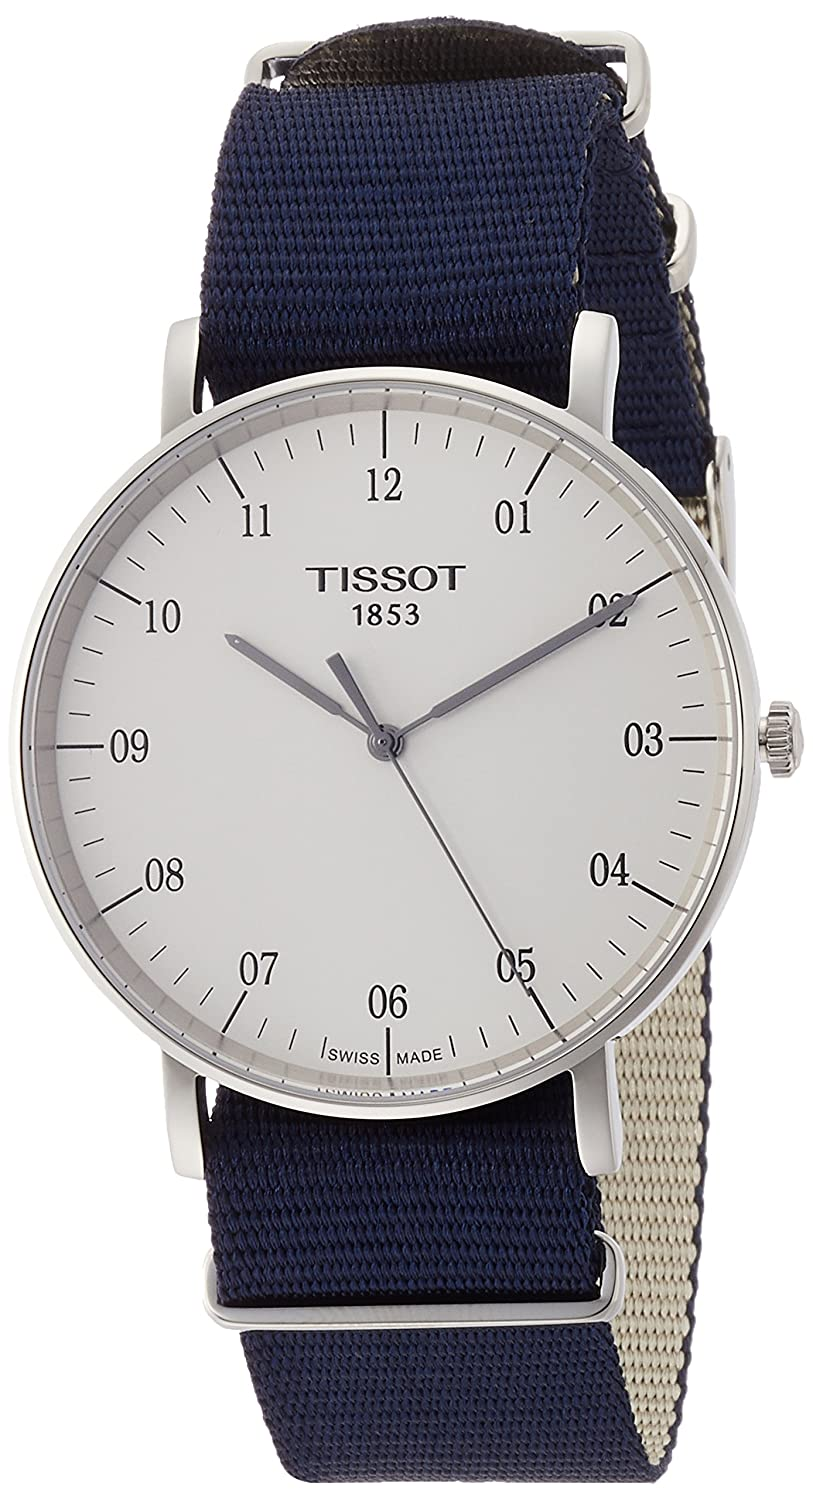 Amazon.com: Tissot Unisex Everytime Large NATO - T1096101703700 Silver/Blue One Size: Tissot: Watches